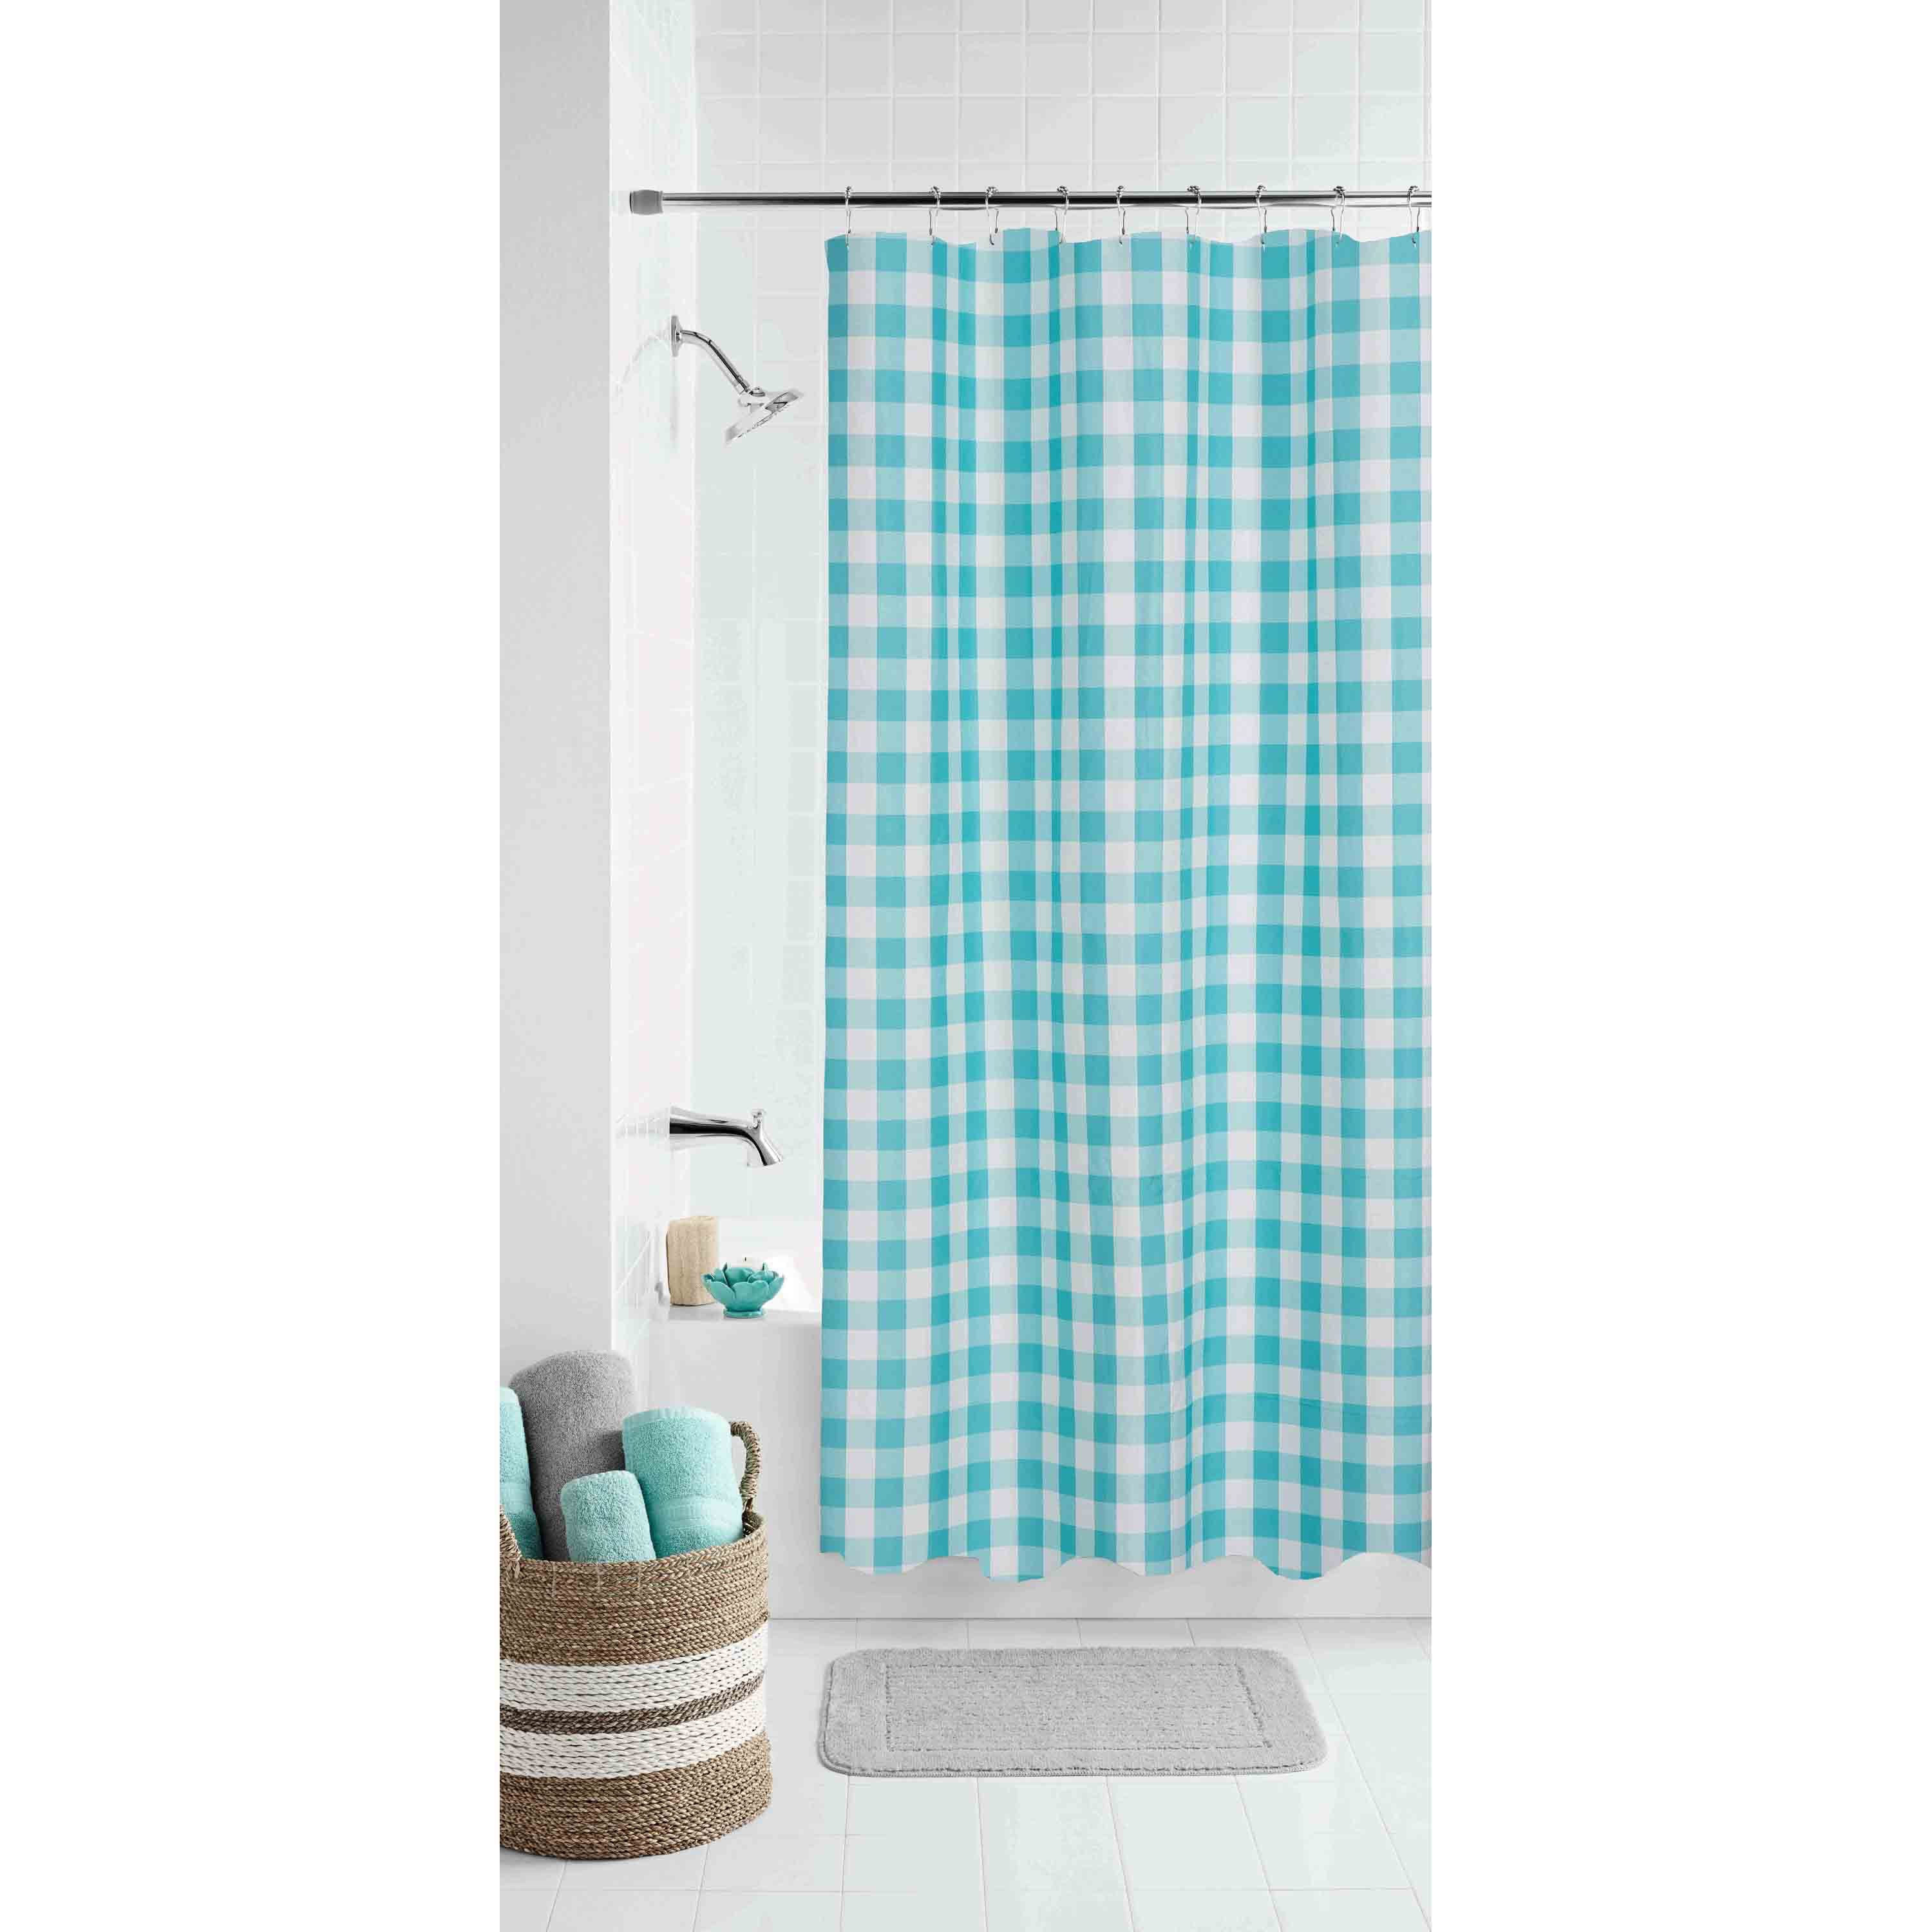 mainstays teal gingham polyester shower curtain 70x72